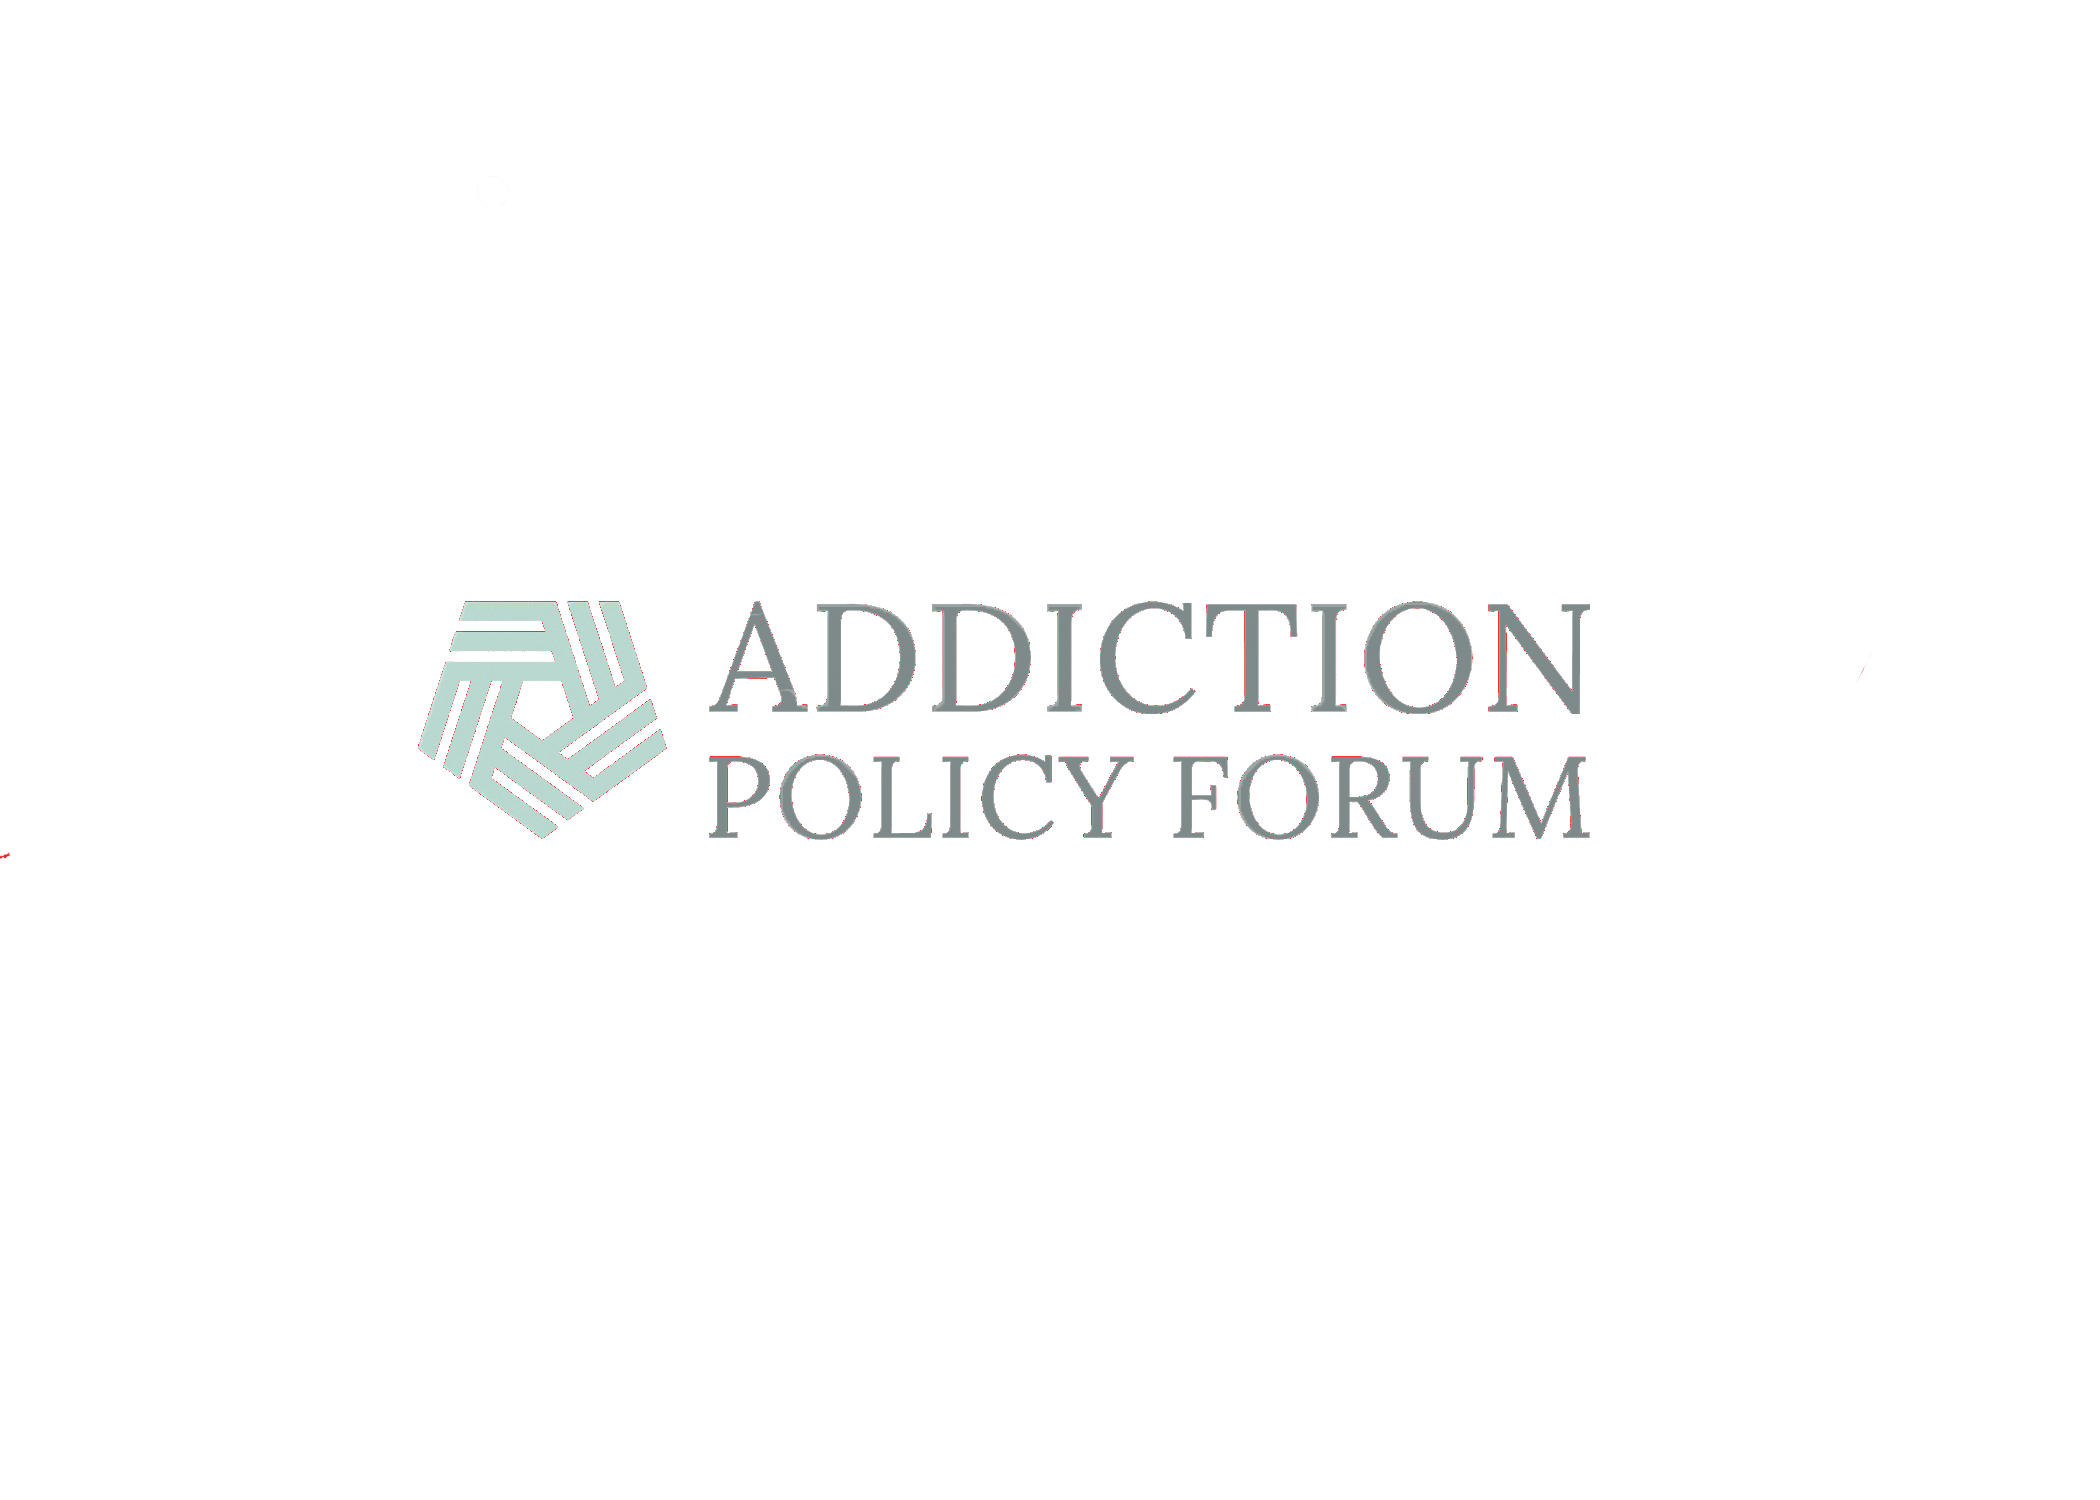 Addiction Policy Forum